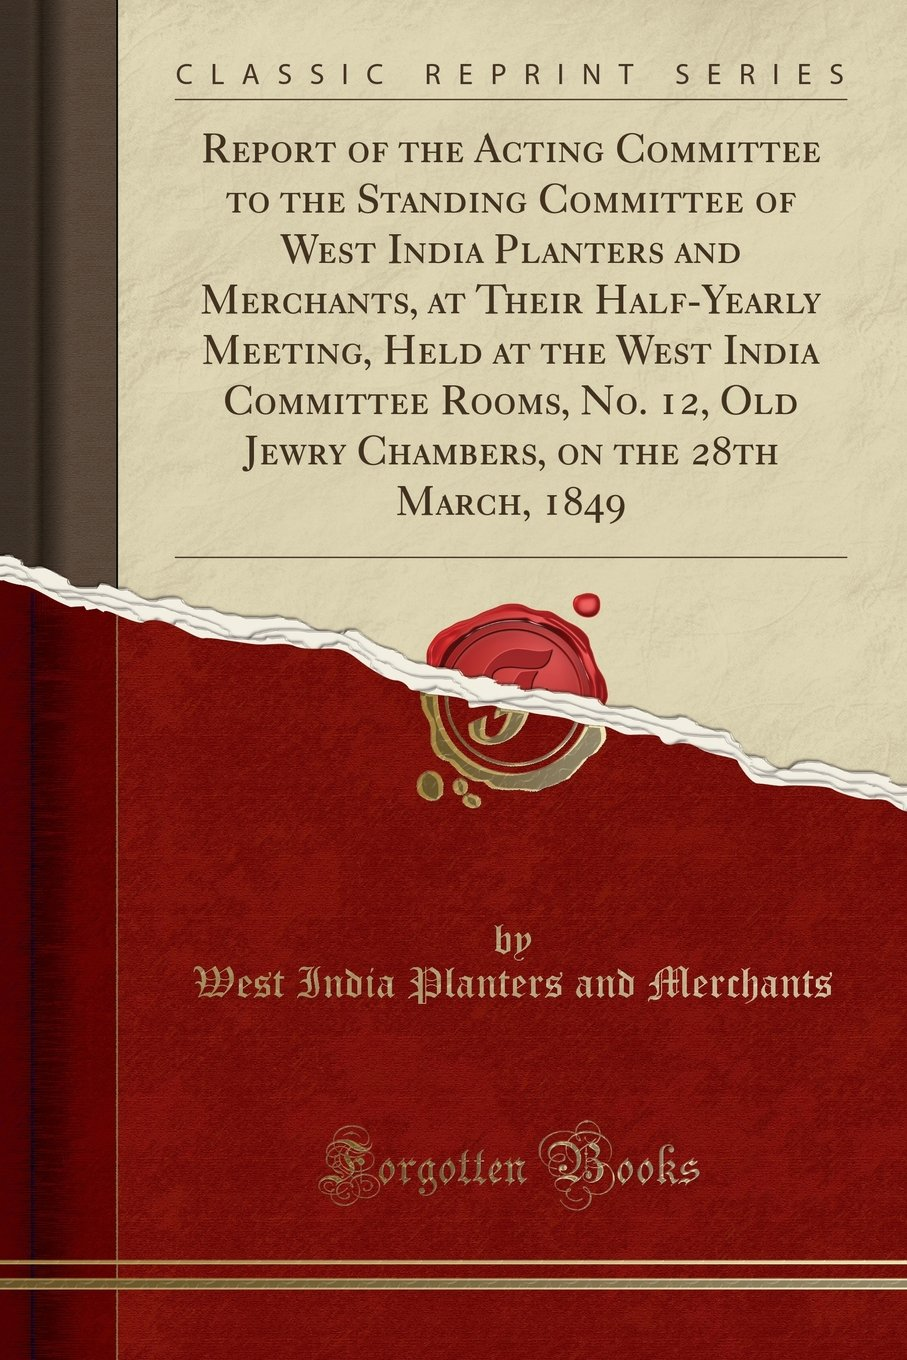 Read Online Report of the Acting Committee to the Standing Committee of West India Planters and Merchants, at Their Half-Yearly Meeting, Held at the West India ... on the 28th March, 1849 (Classic Reprint) PDF